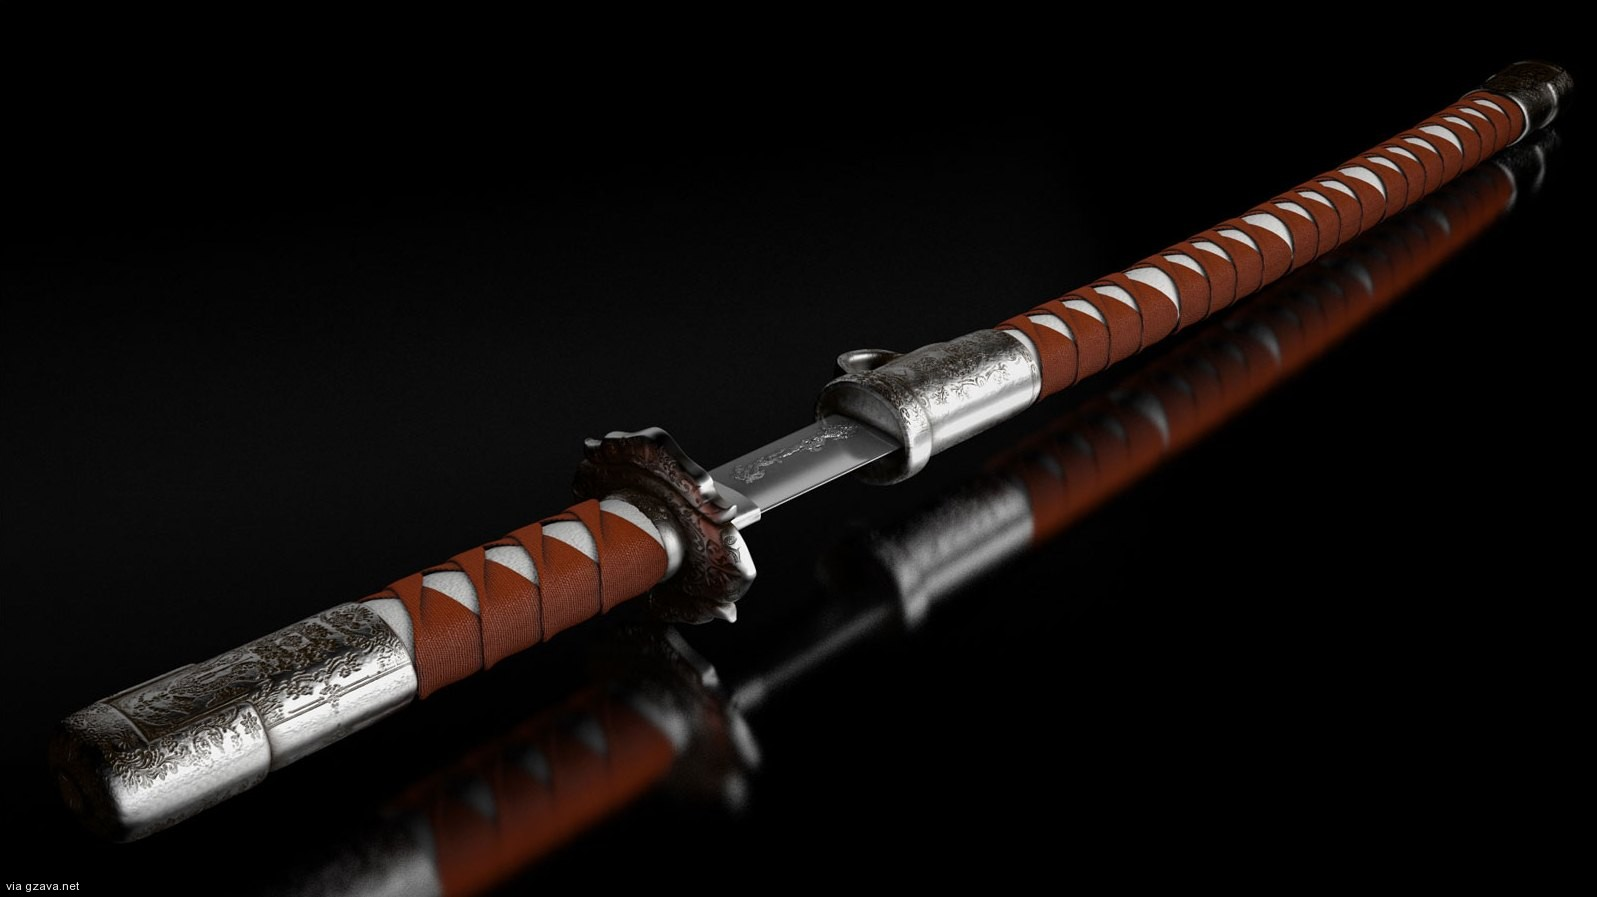 samurai sword wallpaper - wallpapersafari